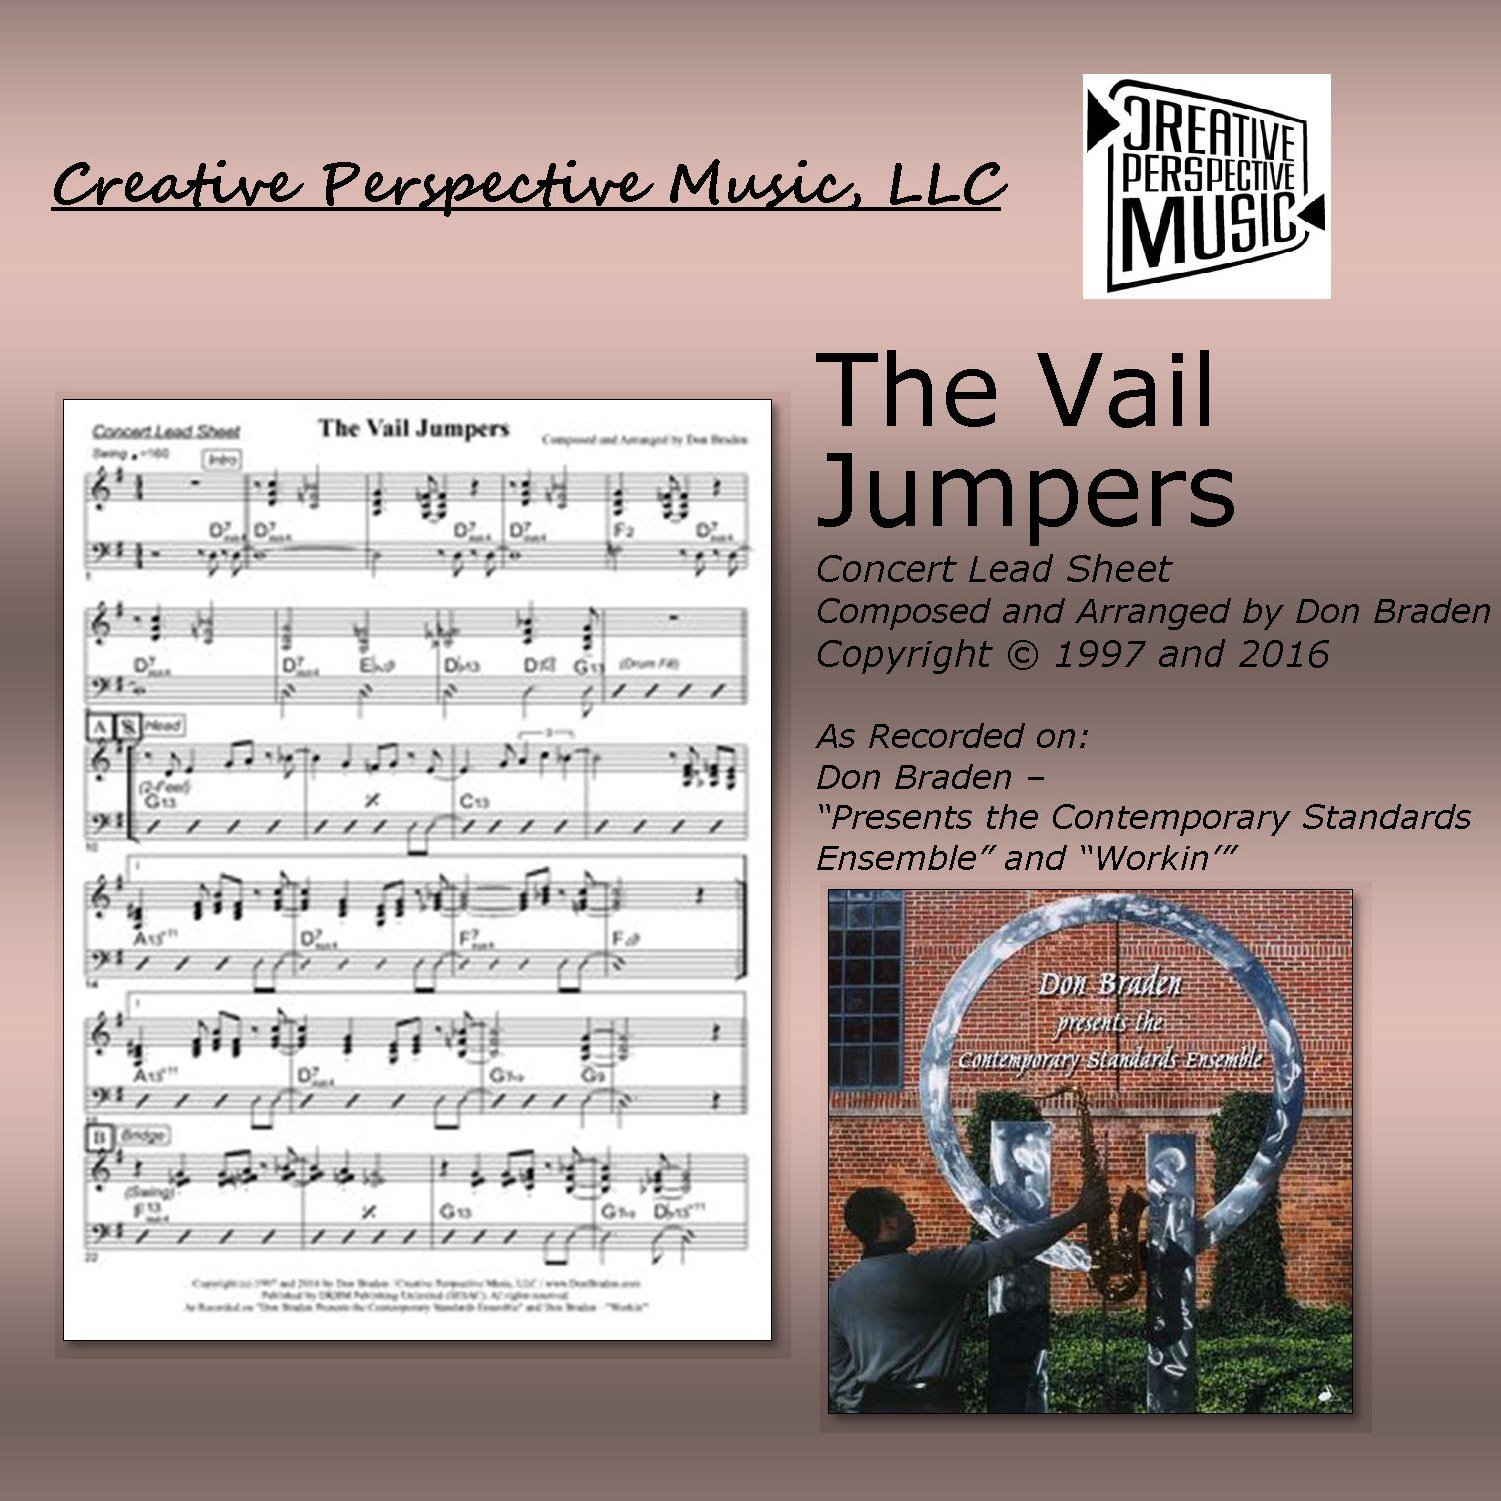 The Vail Jumpers - Concert Lead Sheet